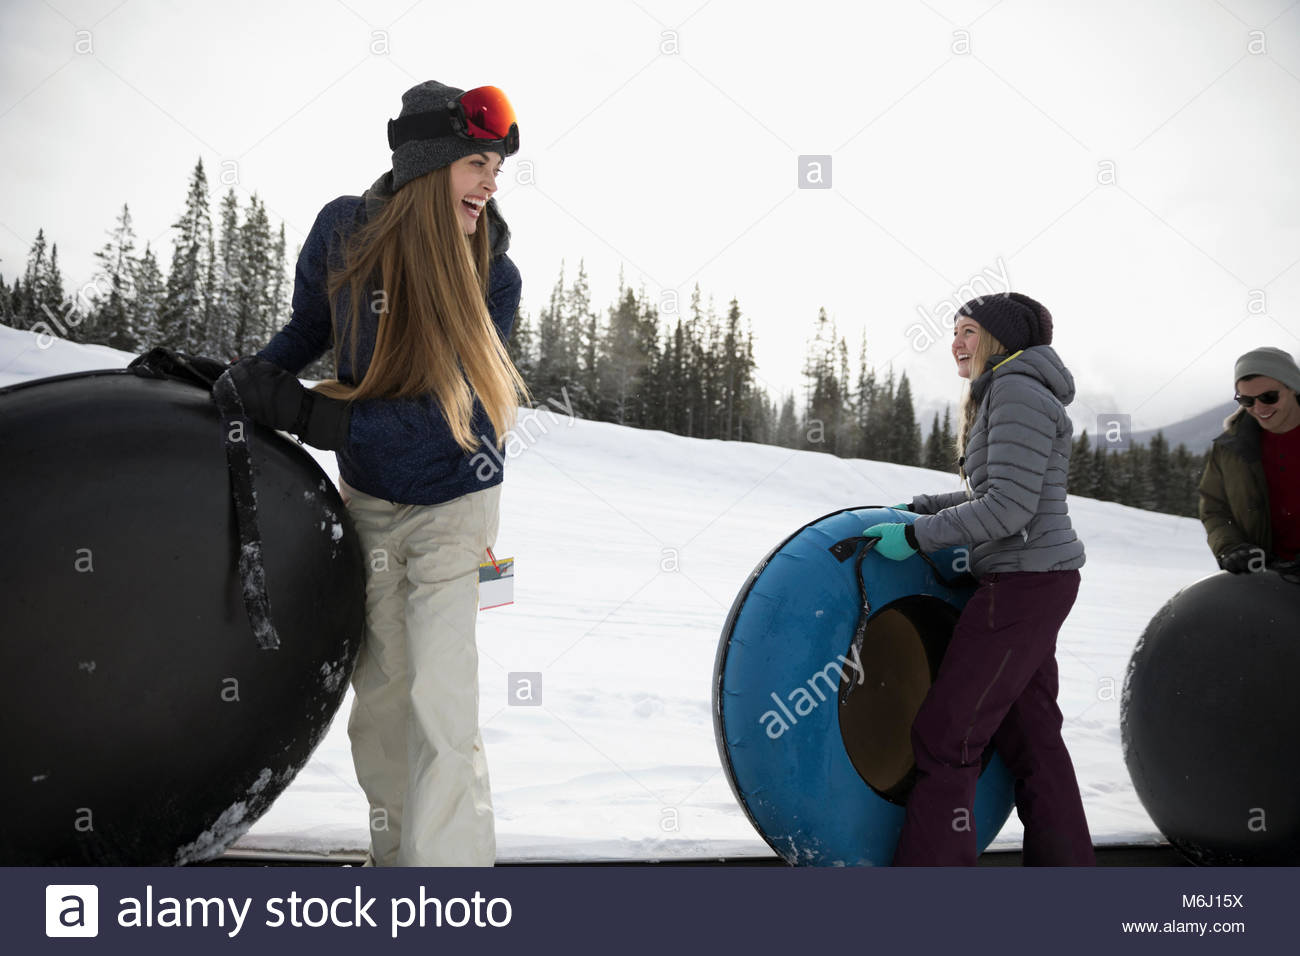 Friends carrying inner tubes in snow - Stock Image